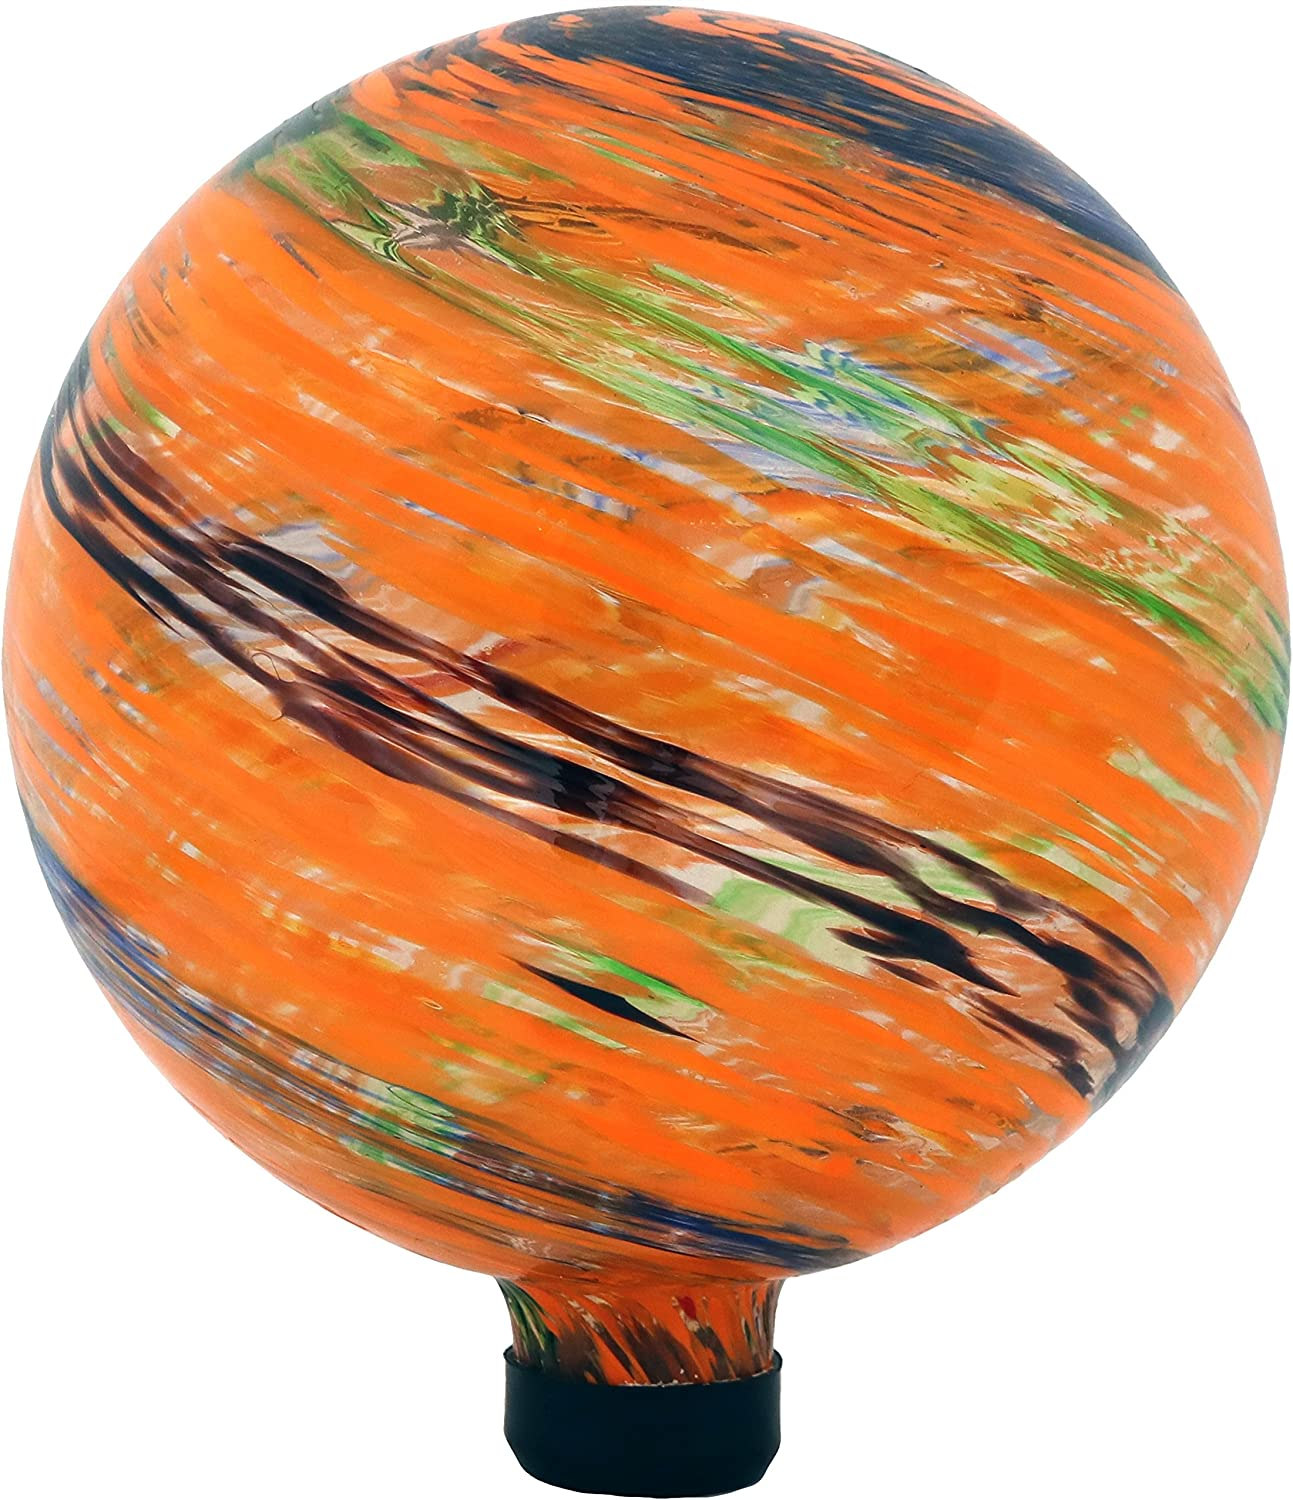 Sunnydaze Sunset Sky Gazing Globe Glass Garden Ball, Outdoor Lawn and Yard Ornament, 10-Inch